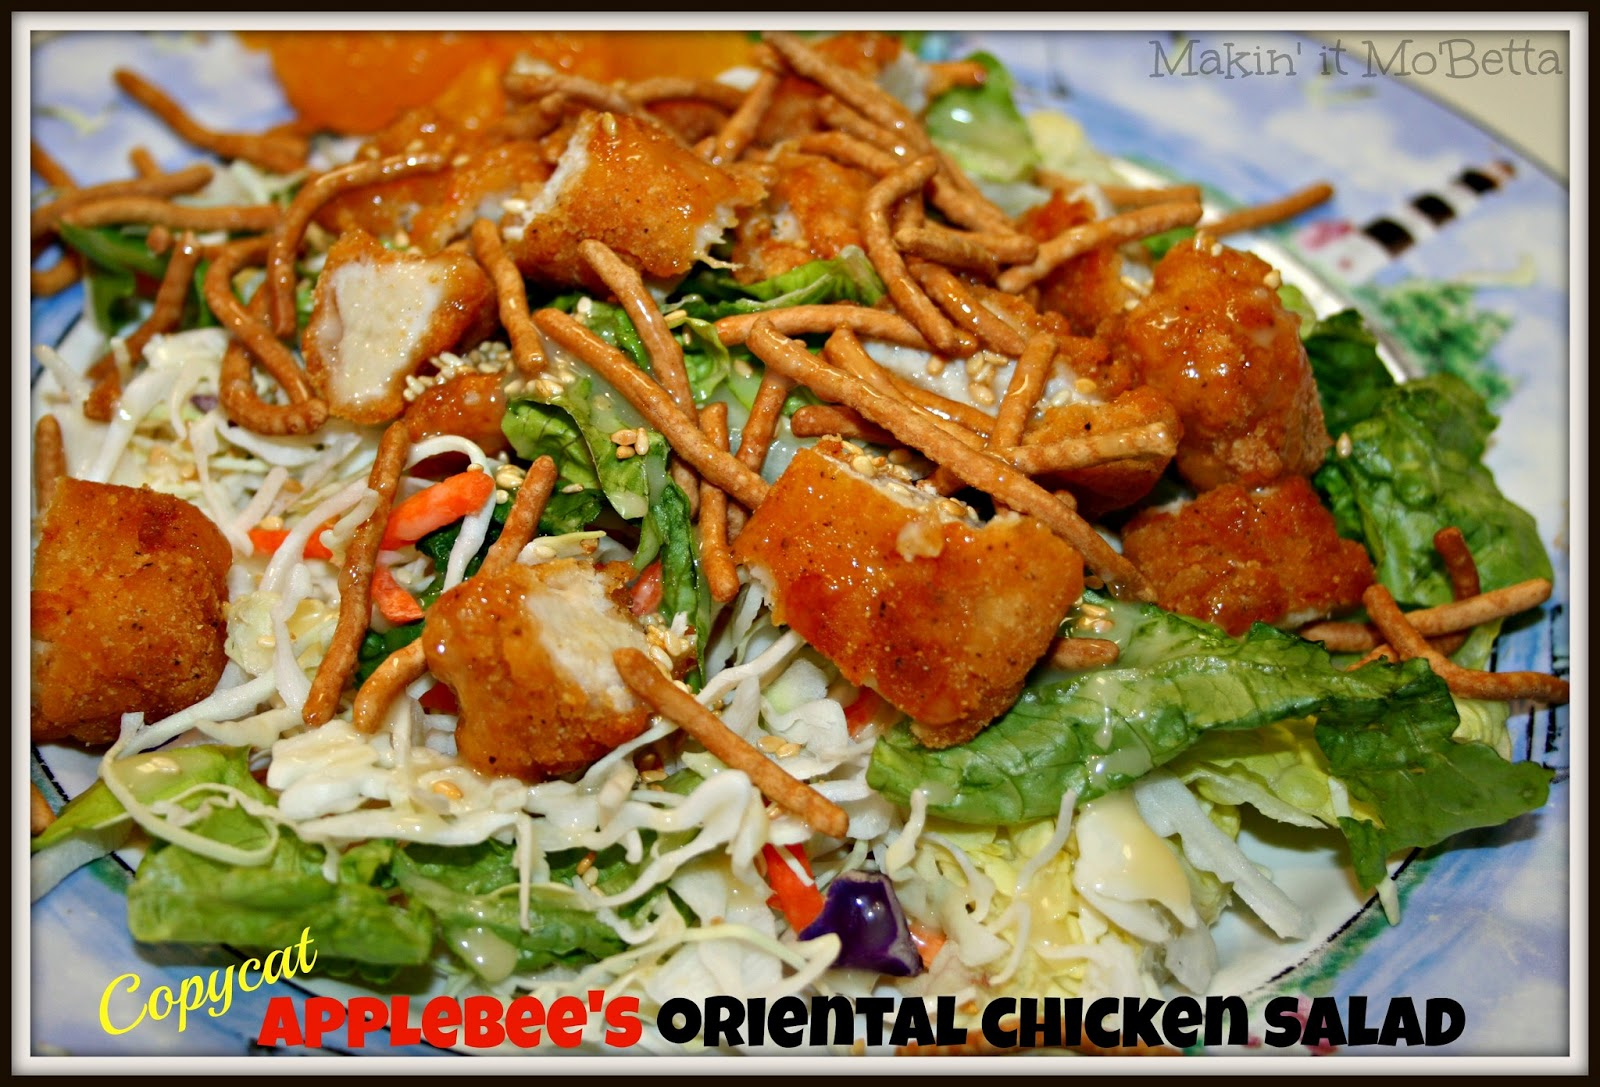 Makin' it Mo' Betta: Copycat Applebee's Oriental Chicken Salad